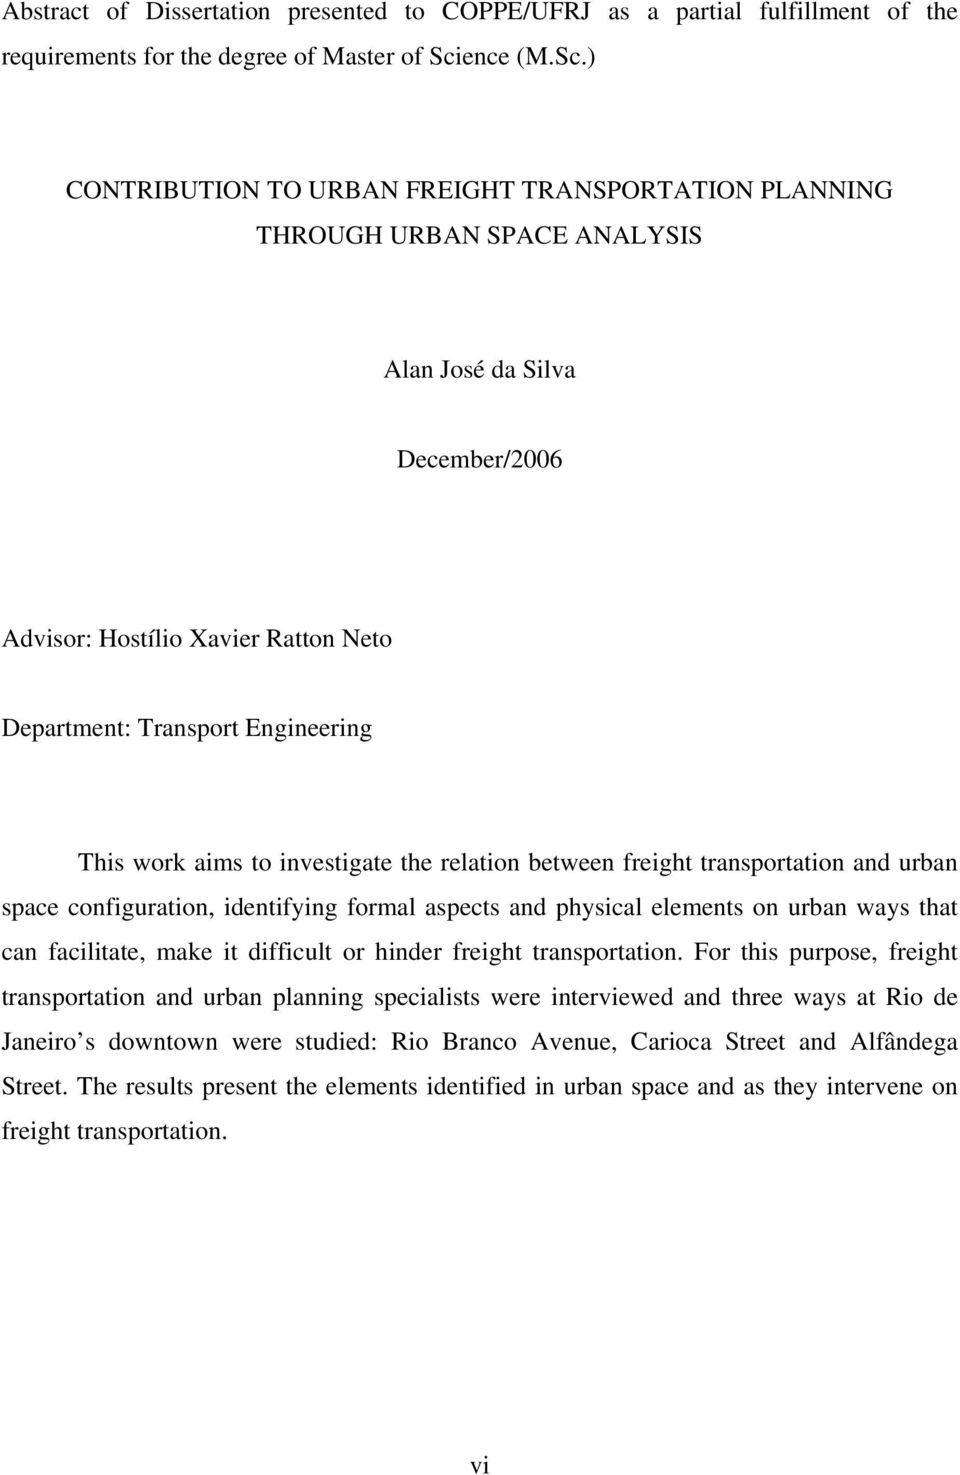 ) CONTRIBUTION TO URBAN FREIGHT TRANSPORTATION PLANNING THROUGH URBAN SPACE ANALYSIS Alan José da Silva December/2006 Advisor: Hostílio Xavier Ratton Neto Department: Transport Engineering This work